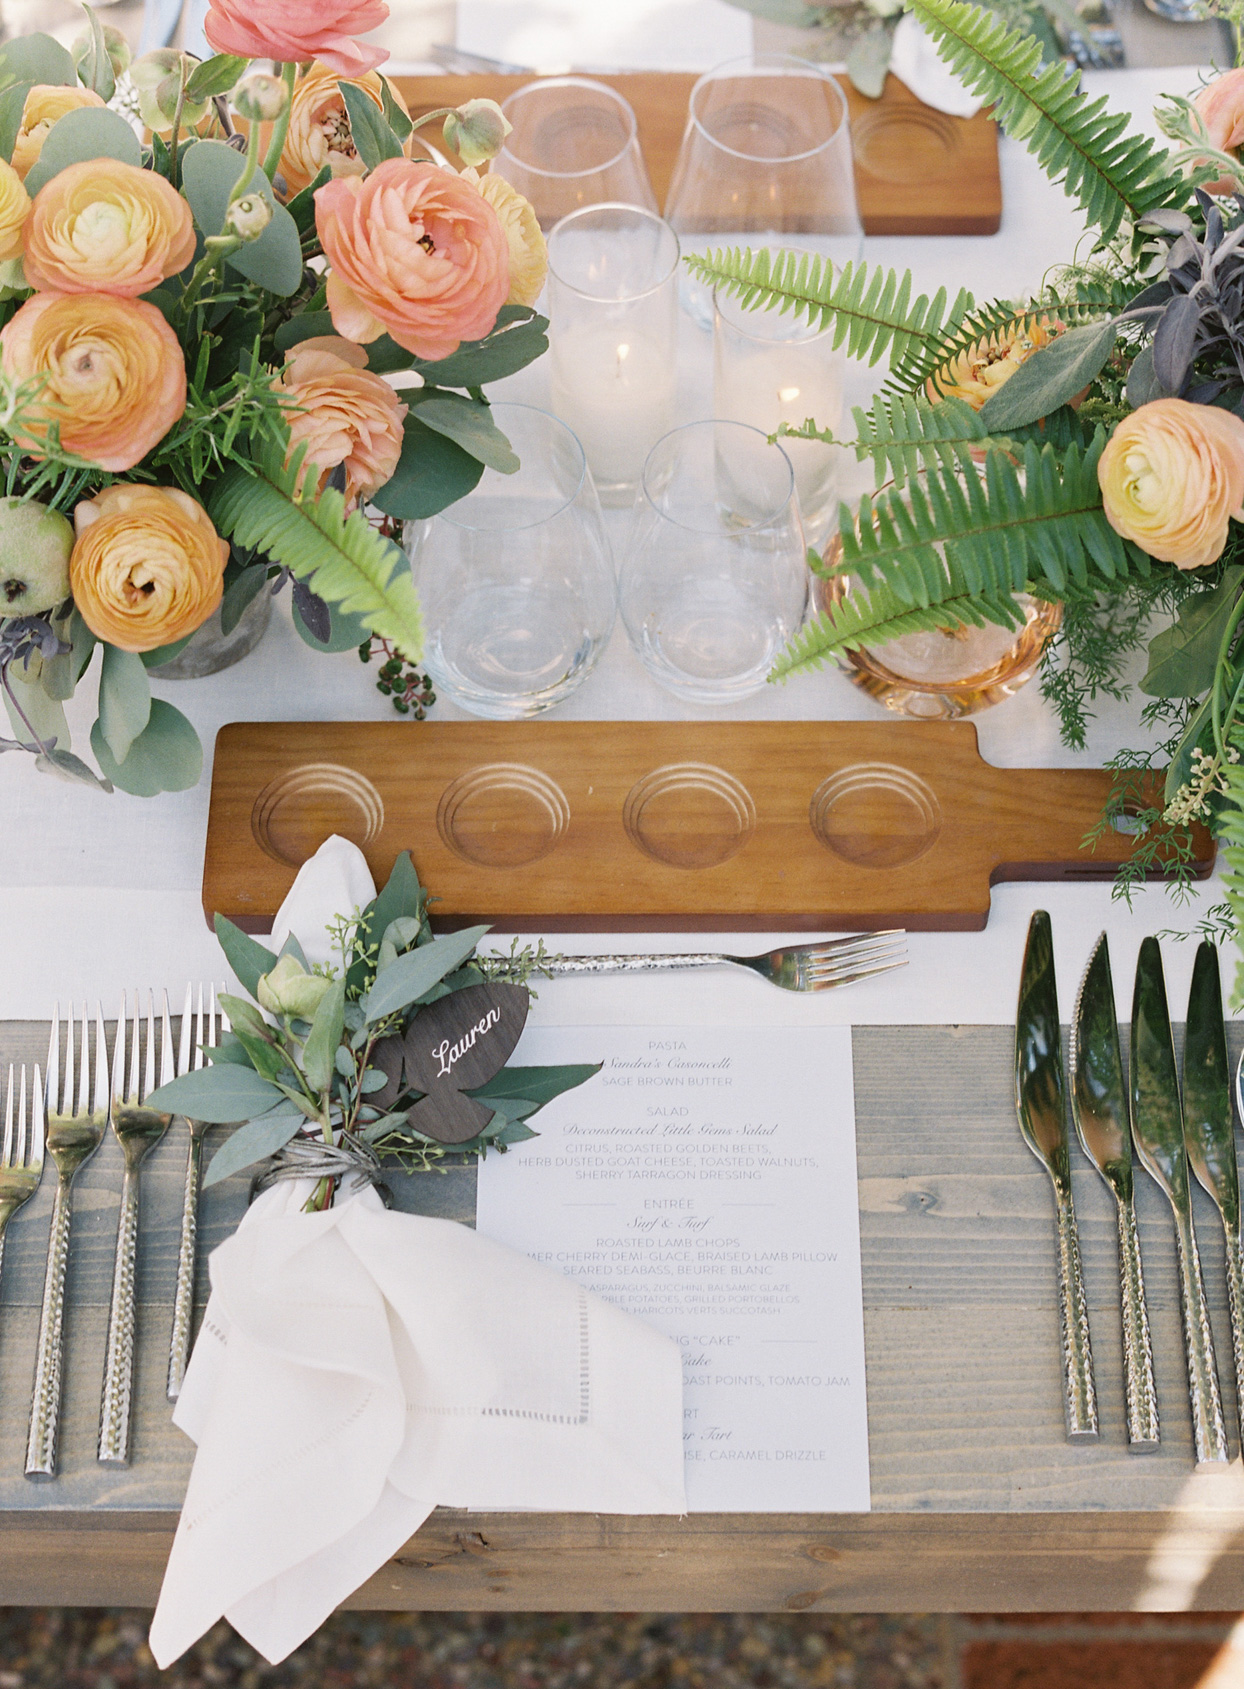 elegant reception table setting with white napkins and greenery